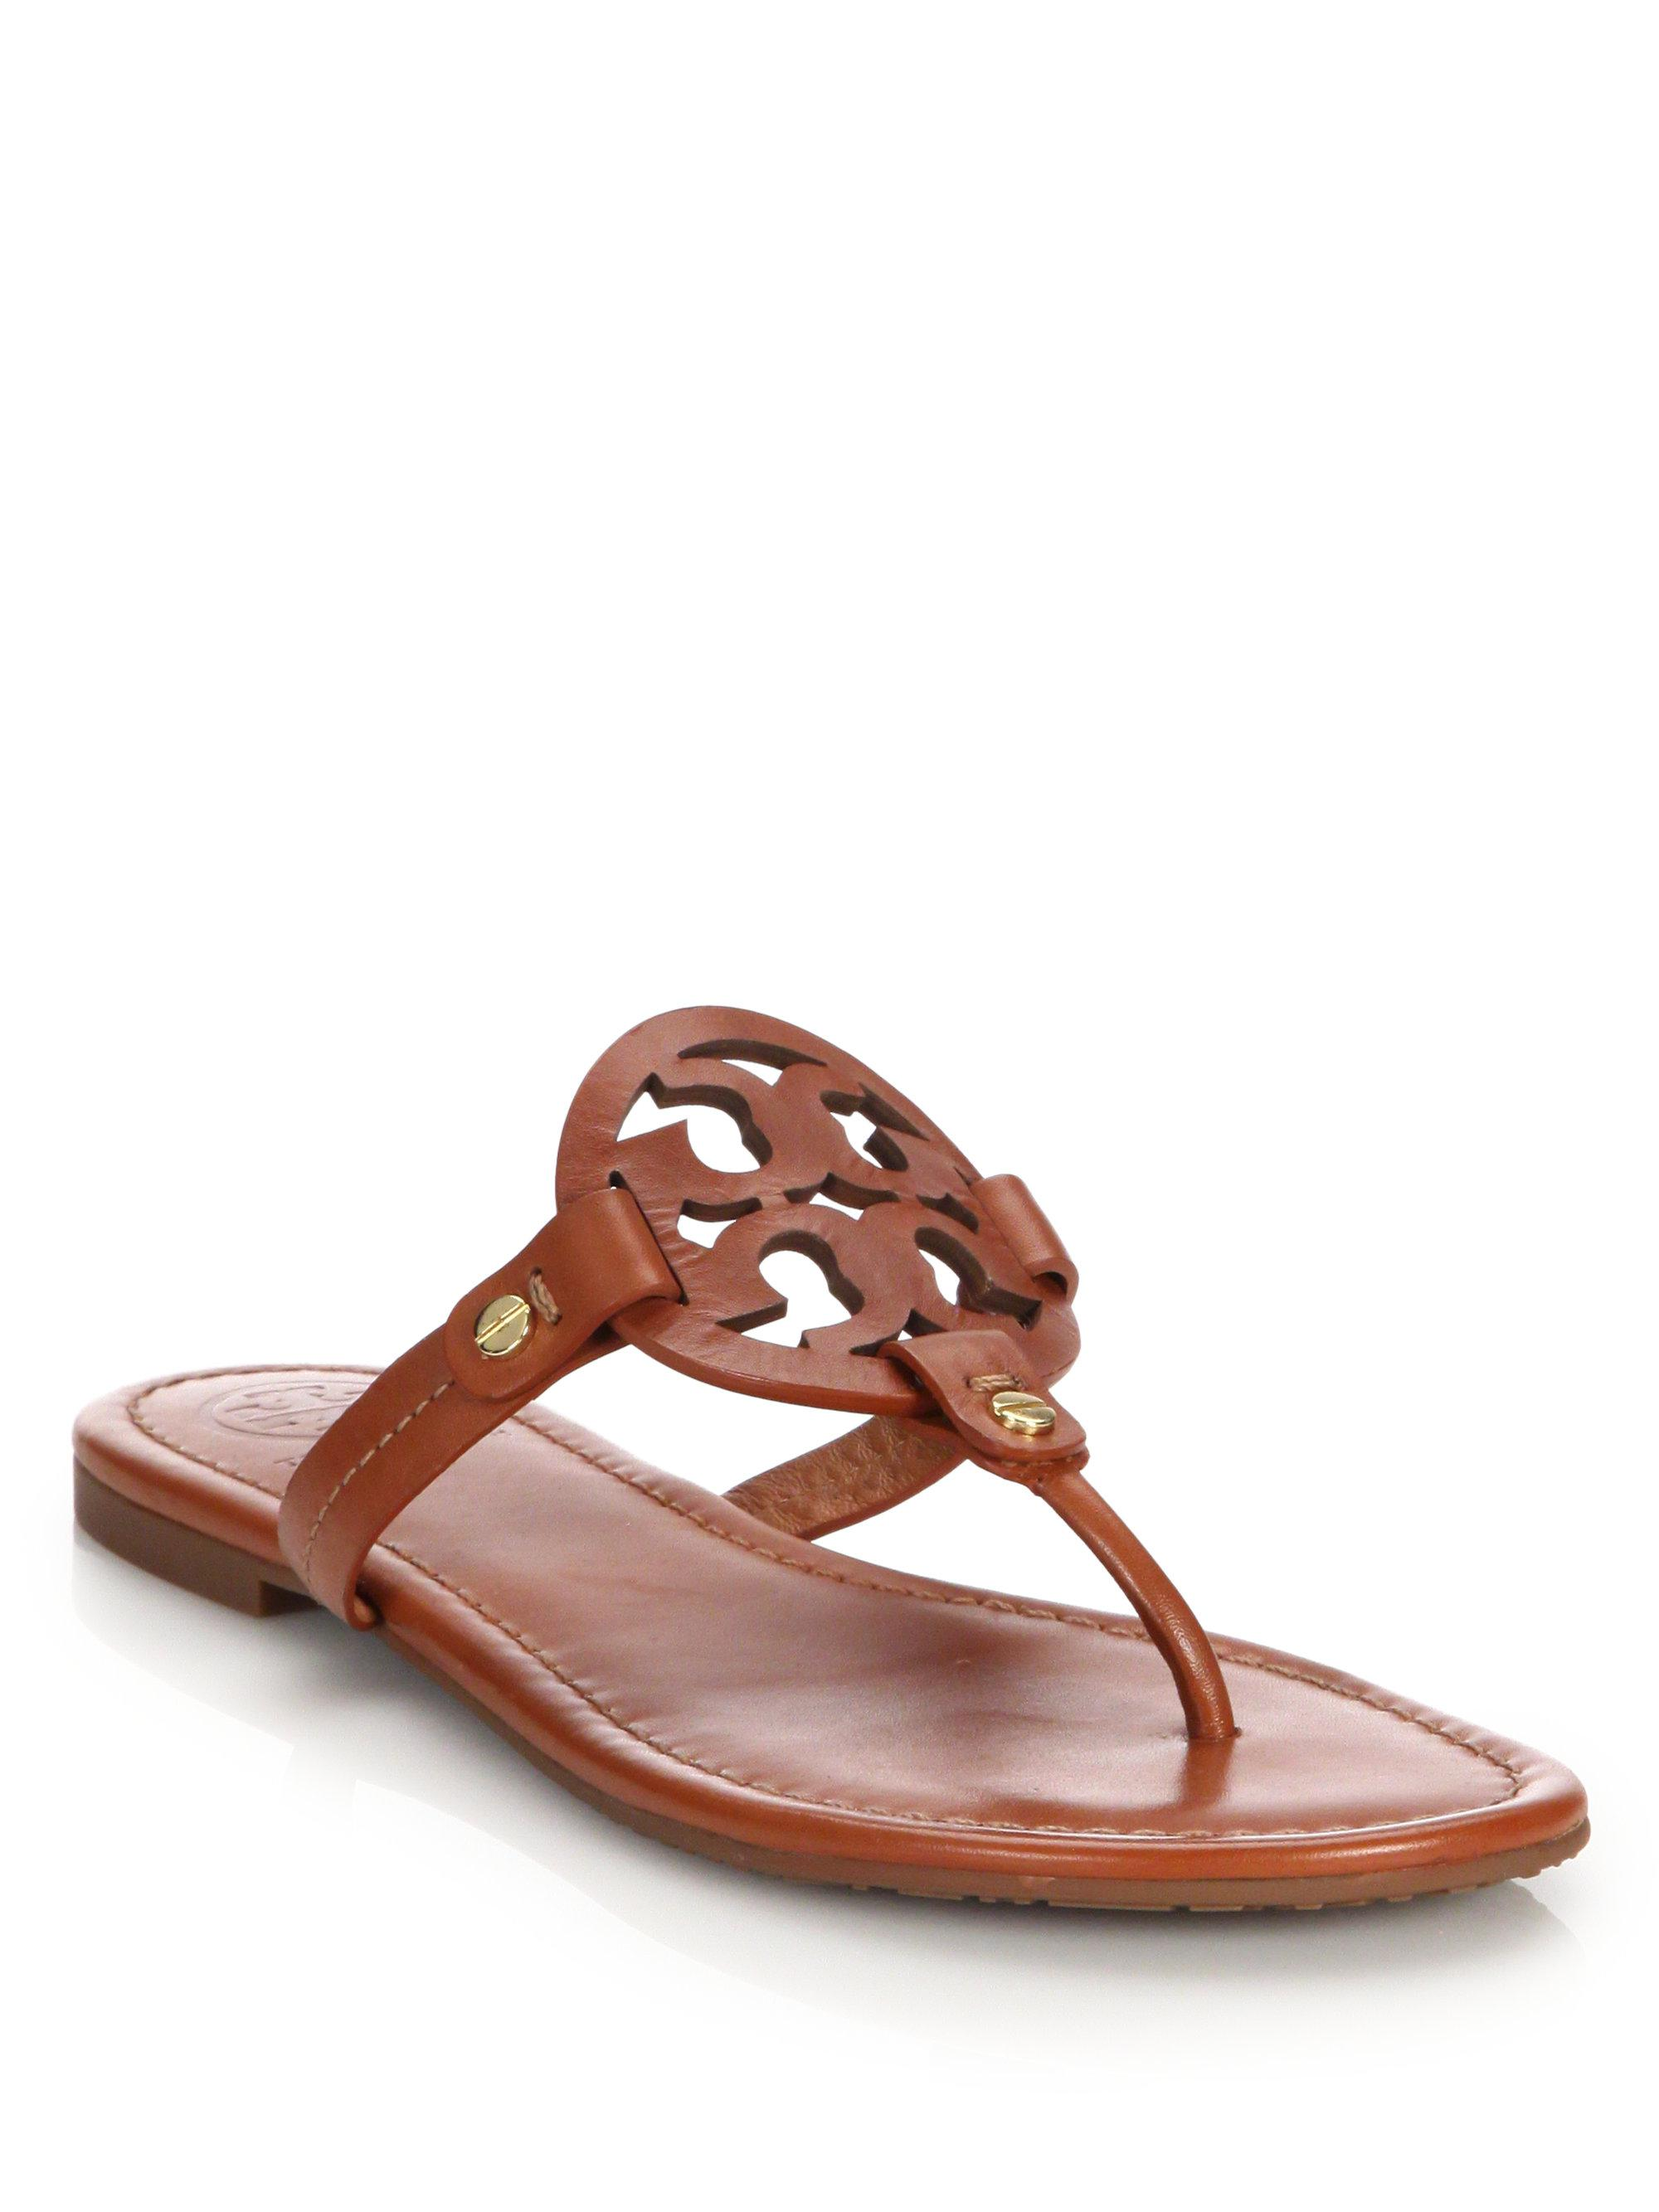 4143d34ee929 Lyst - Tory Burch Miller Leather Logo Thong Sandals in Brown - Save 20%